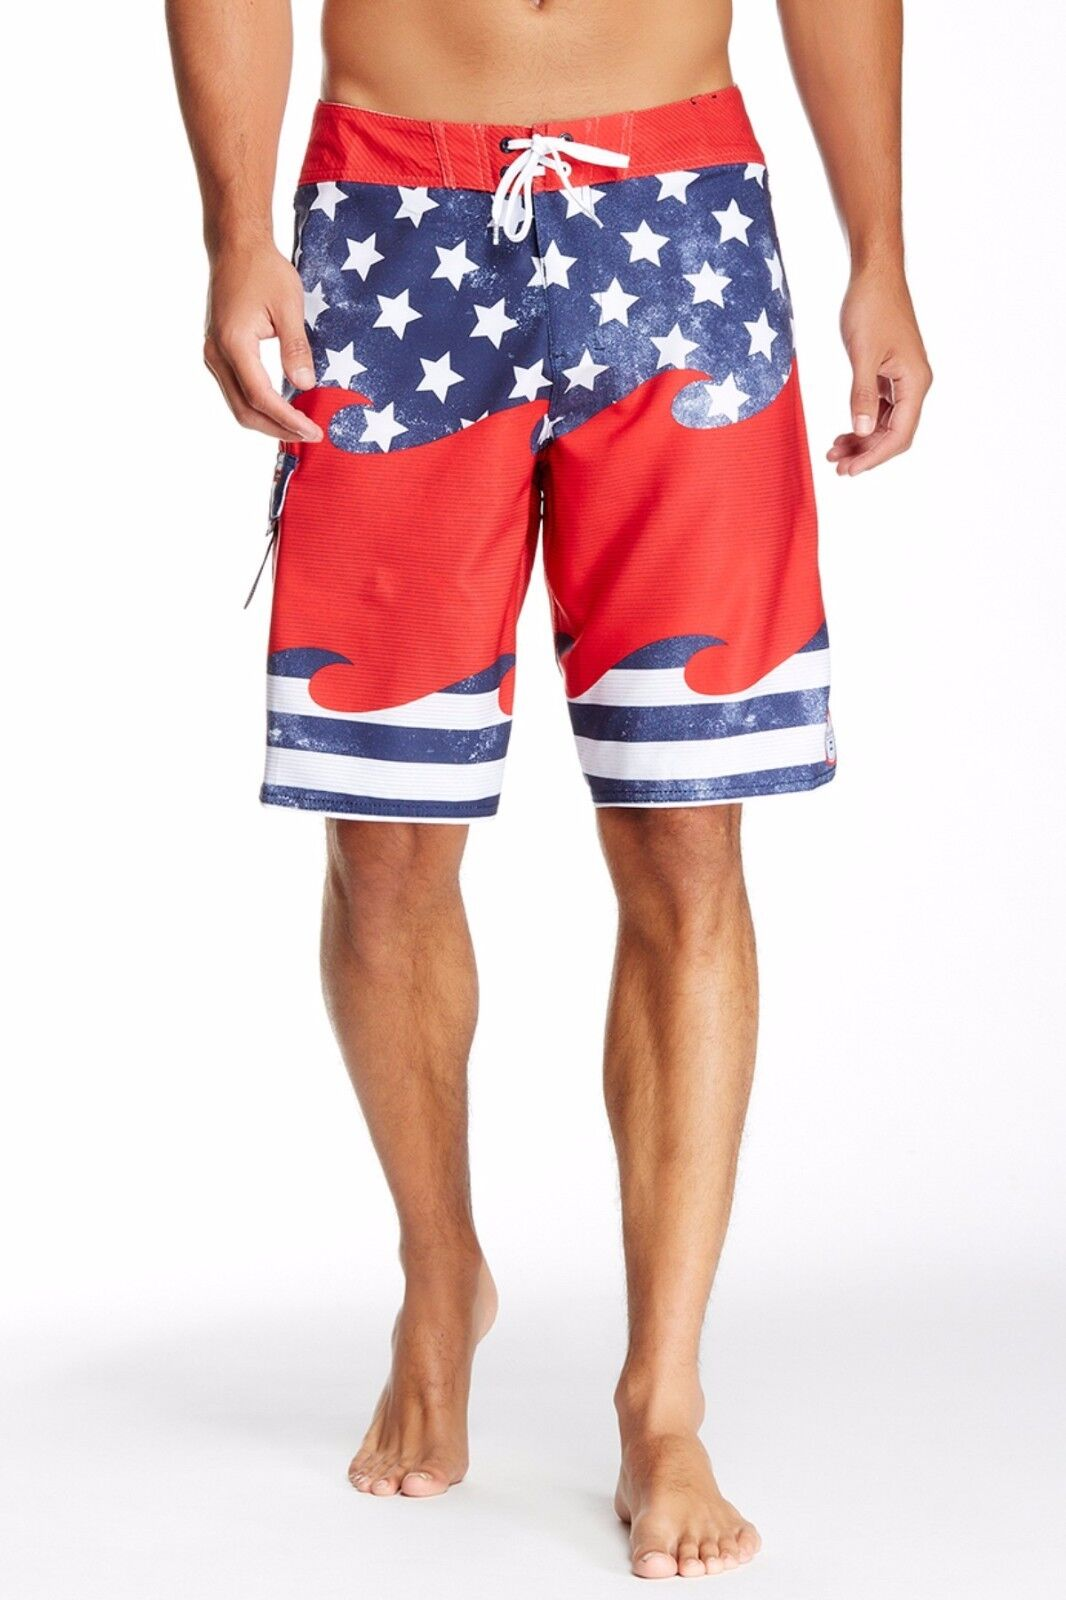 Billabong Men's Unified Board shorts Surf Trunk Beachwear bluee Red White Size 33